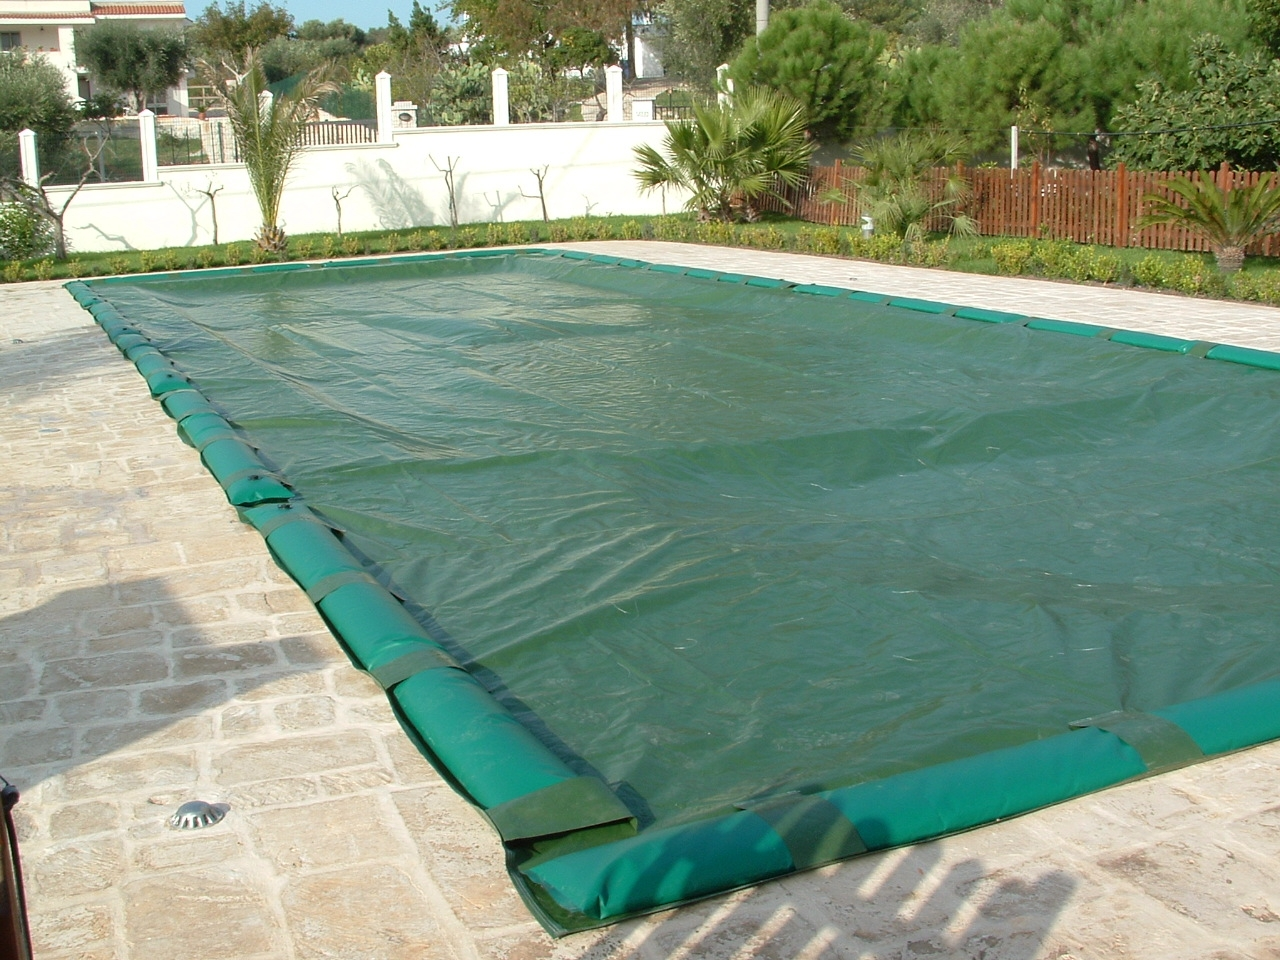 Coperture per piscine firenze cover df toscana for Teli per piscine interrate